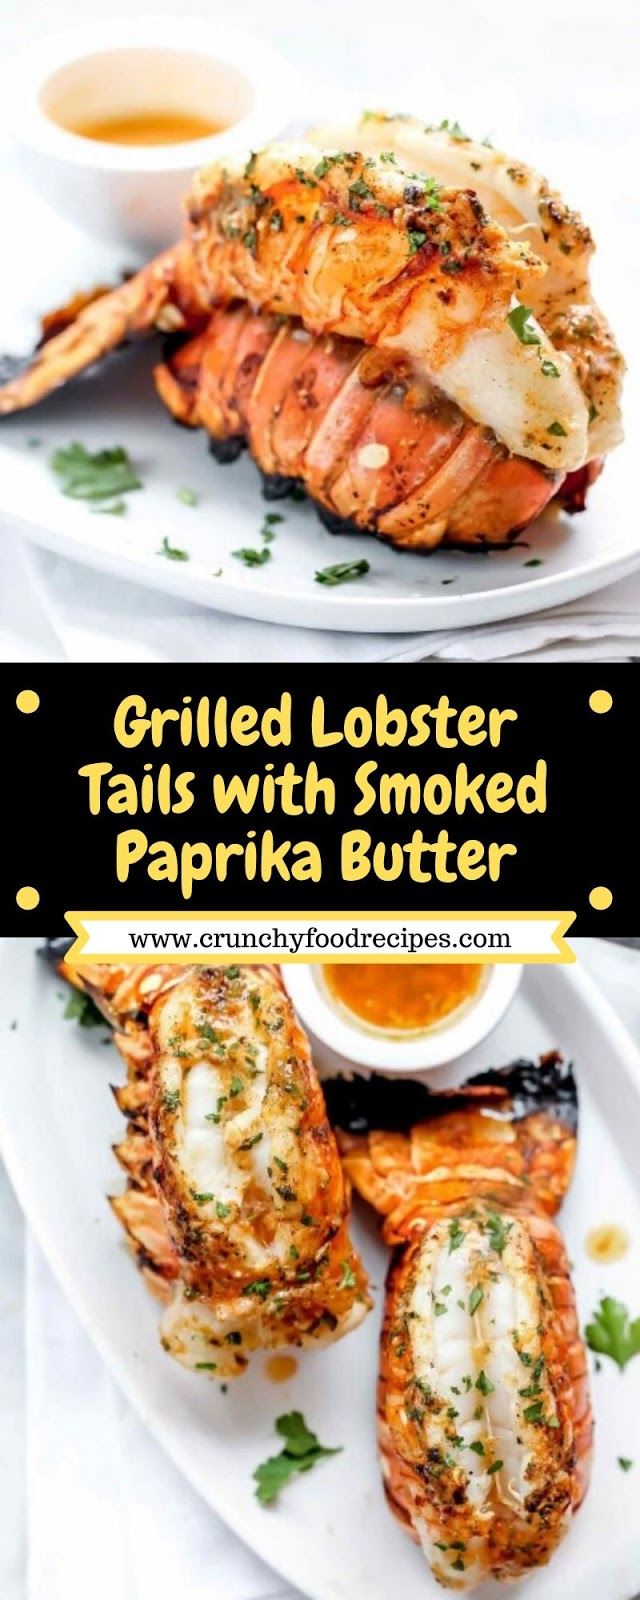 Grilled Lobster Tails with Smoked Paprika Butter